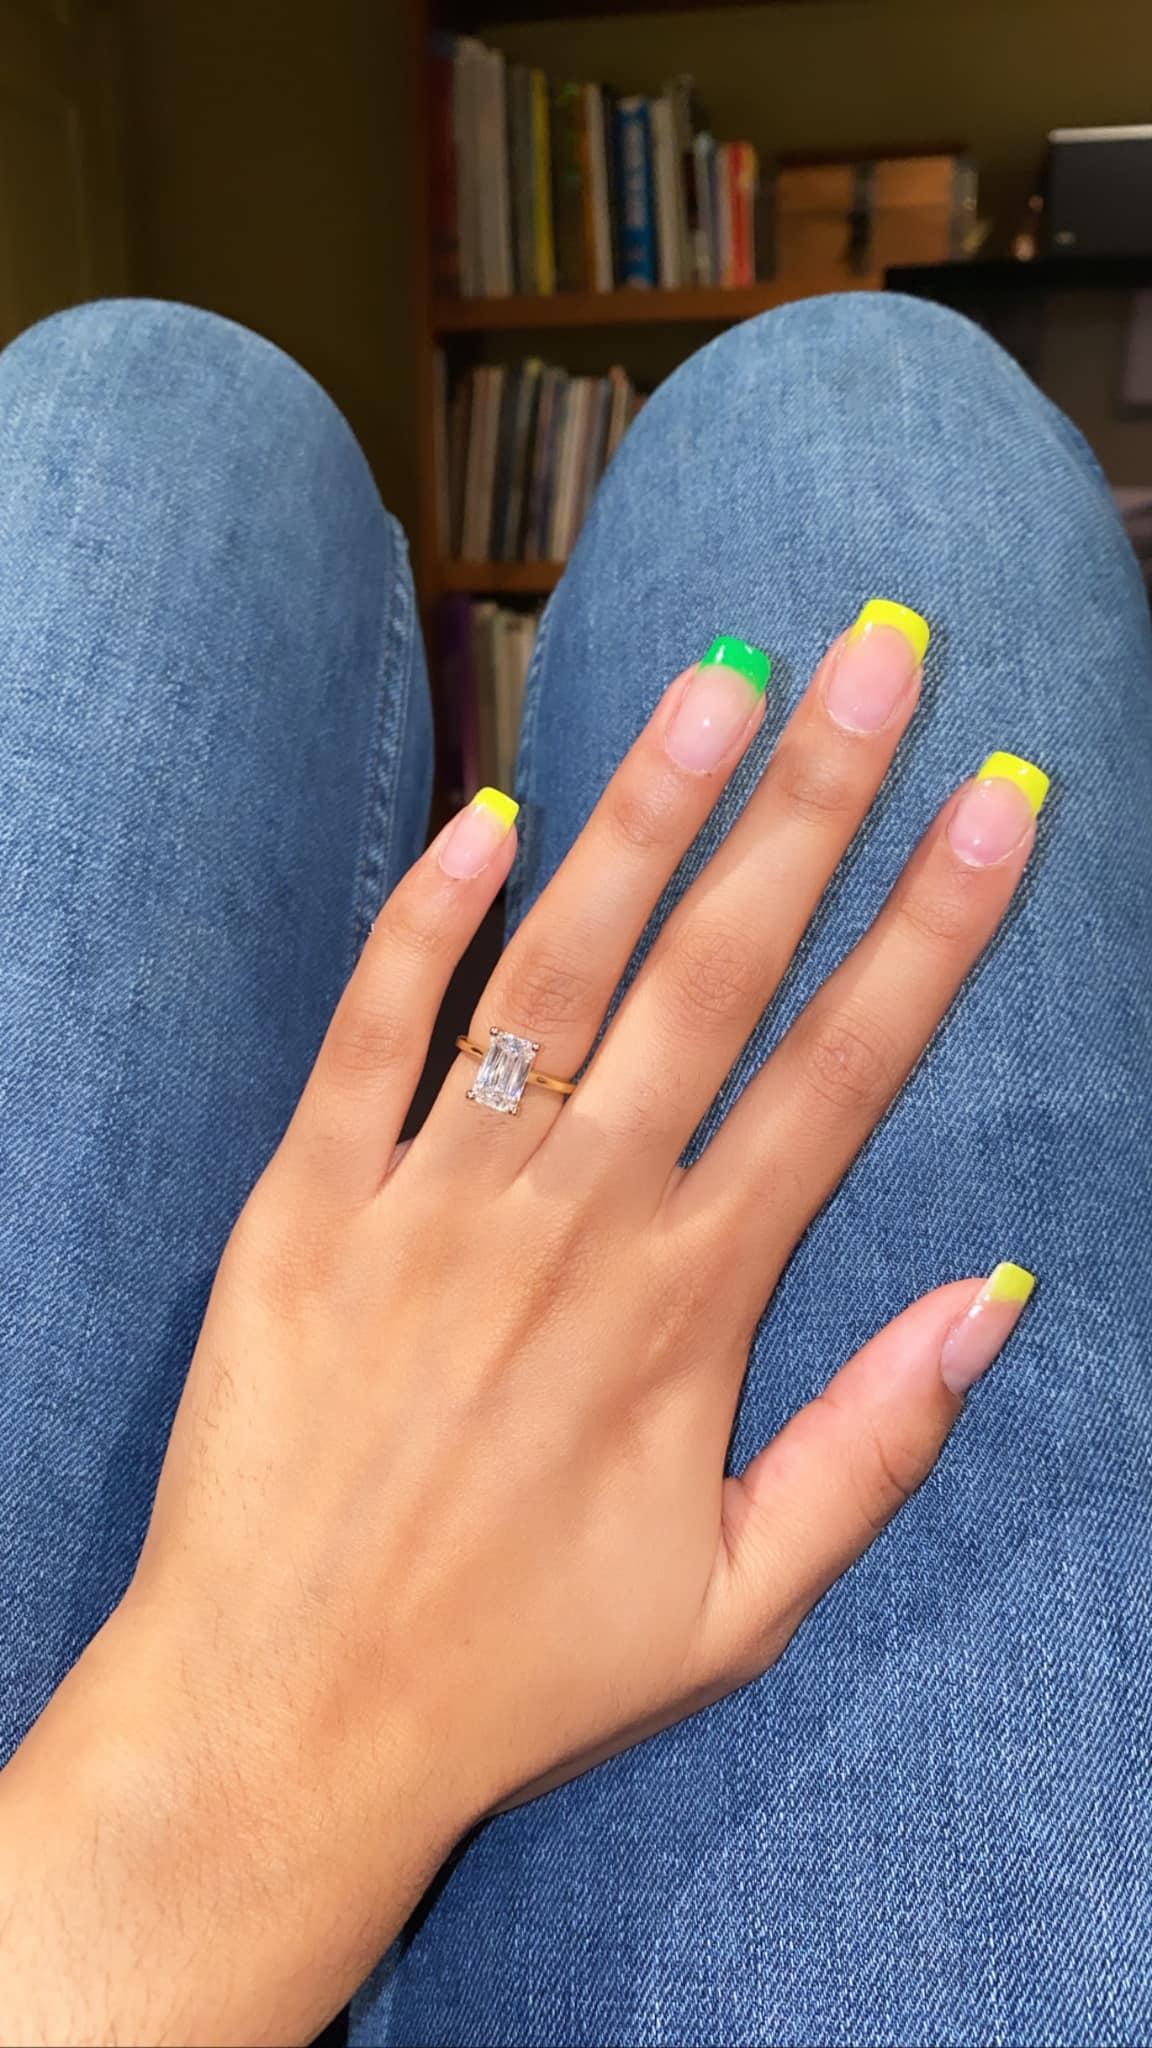 Gorgeous nails paired with a gorgeous ring